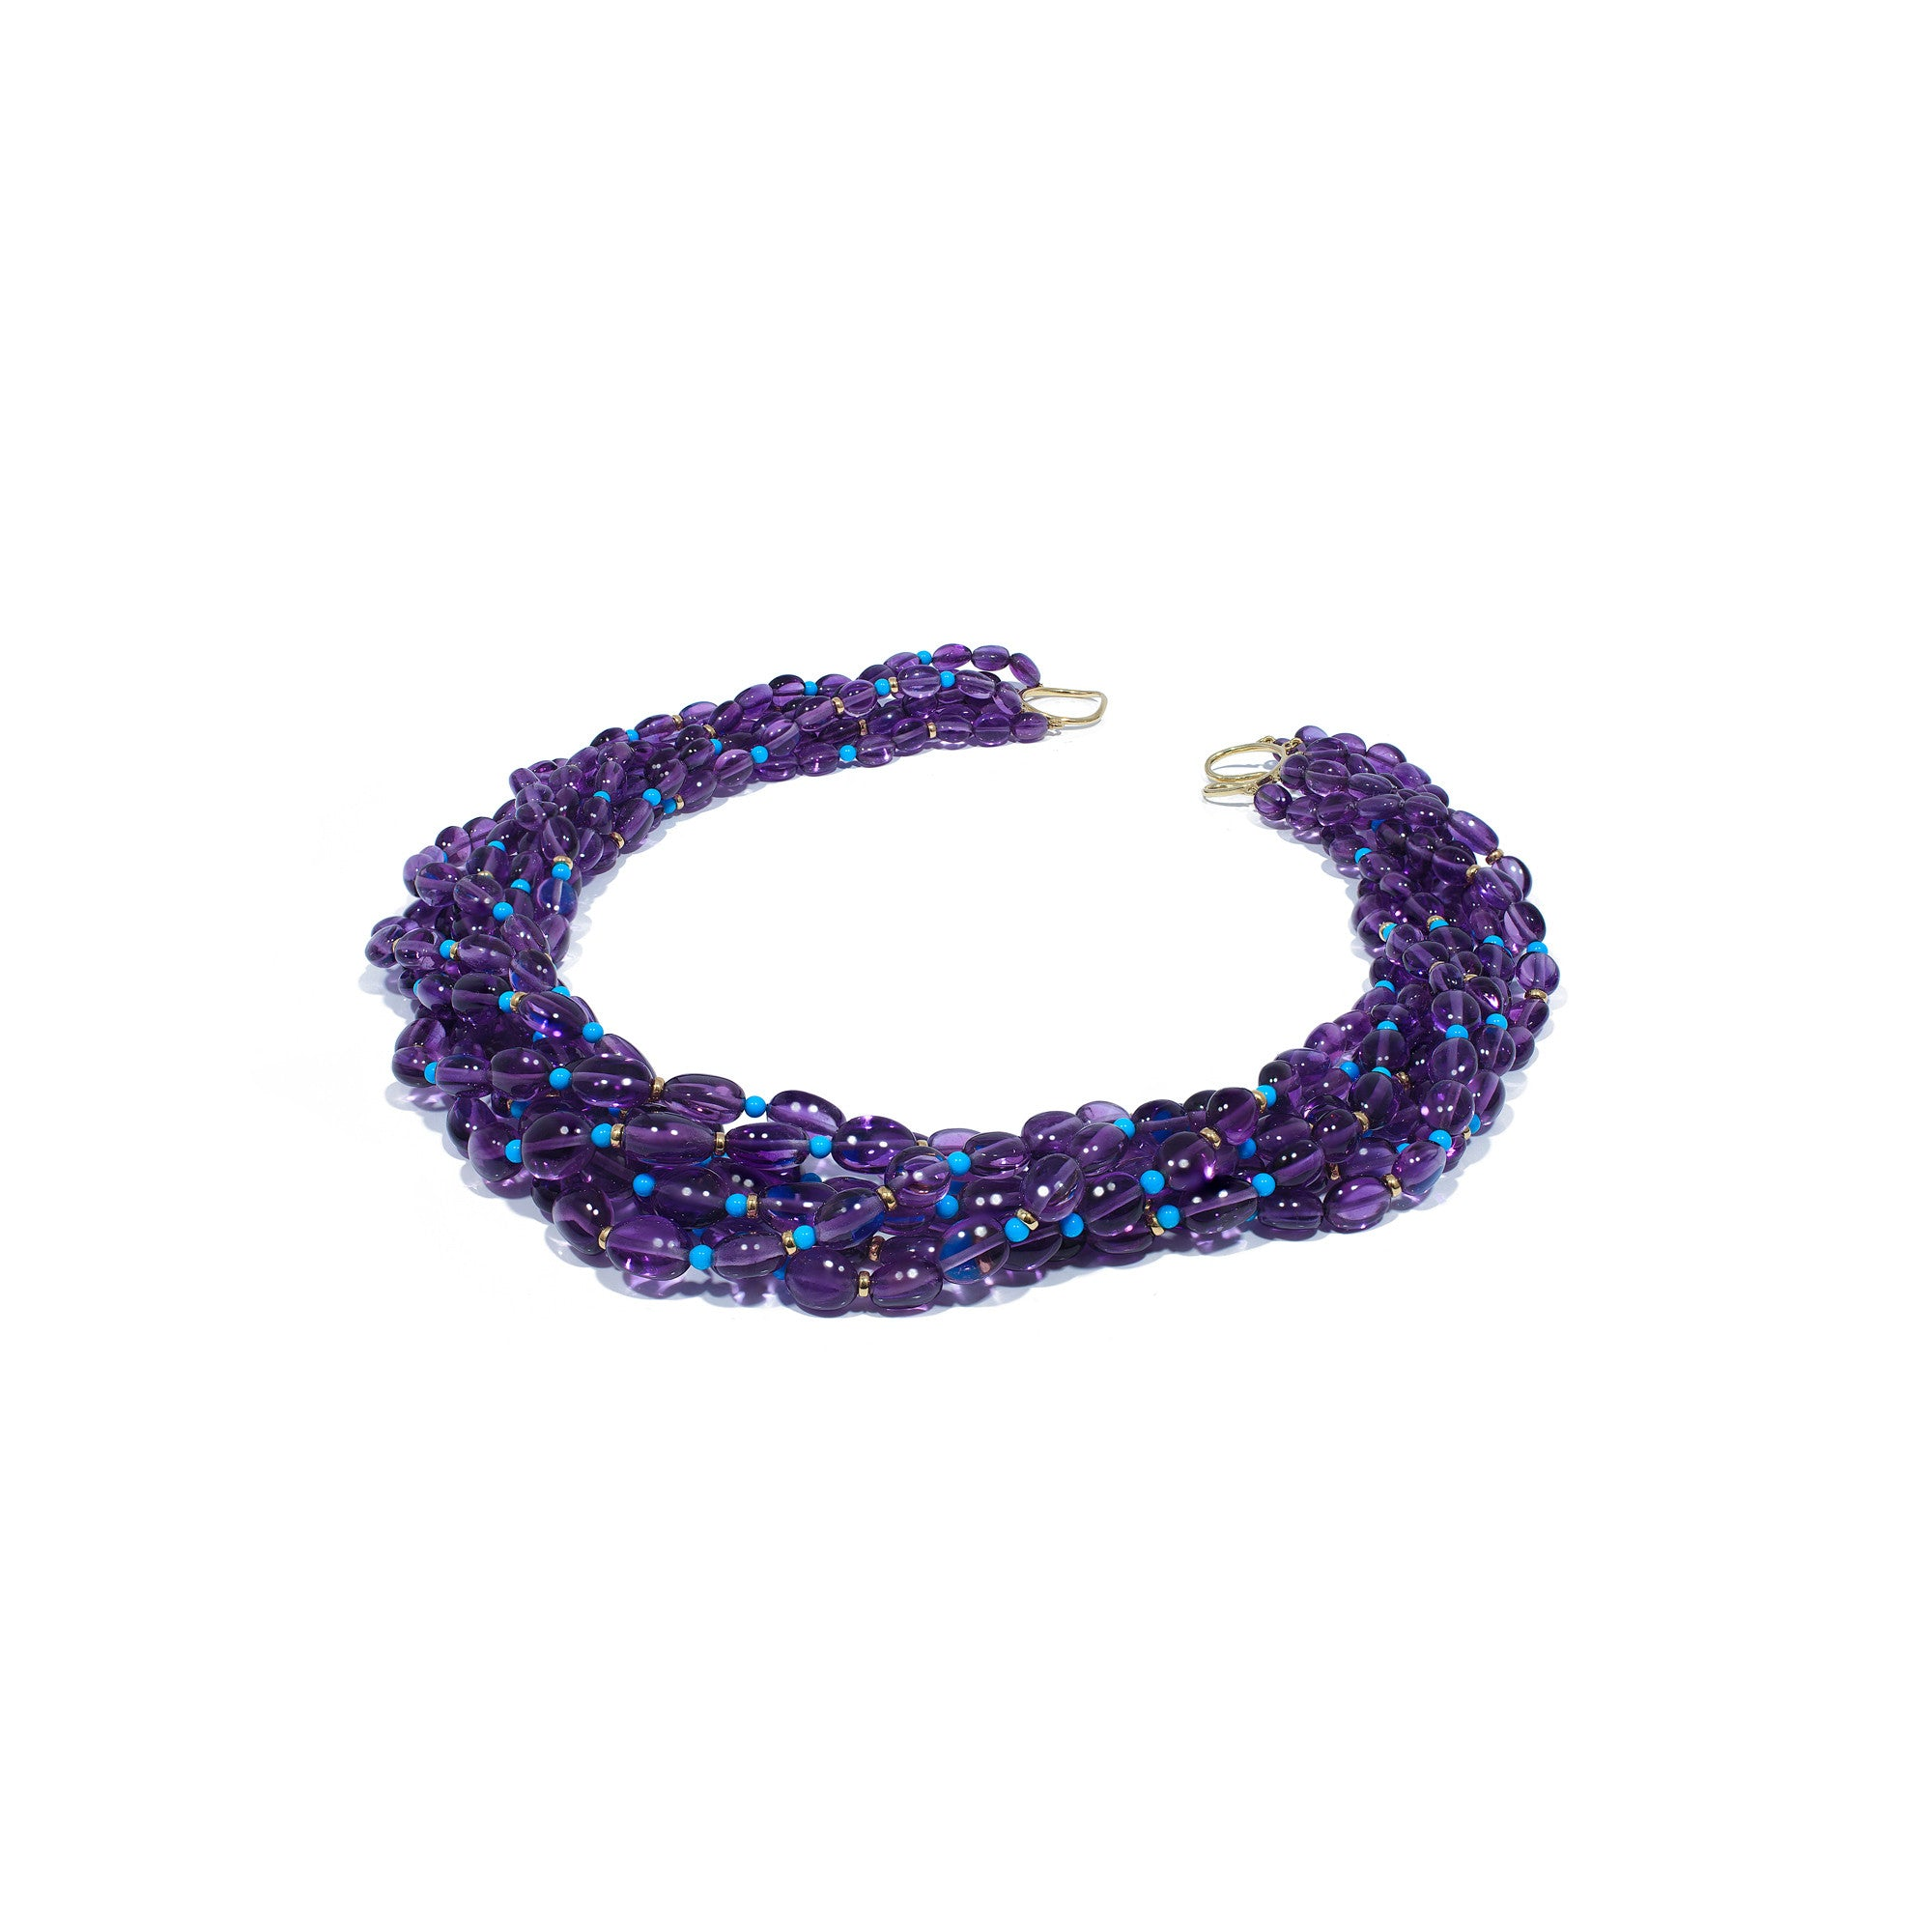 Beyond Seven Strand Amethyst and Turquoise Twisted Bead Necklace